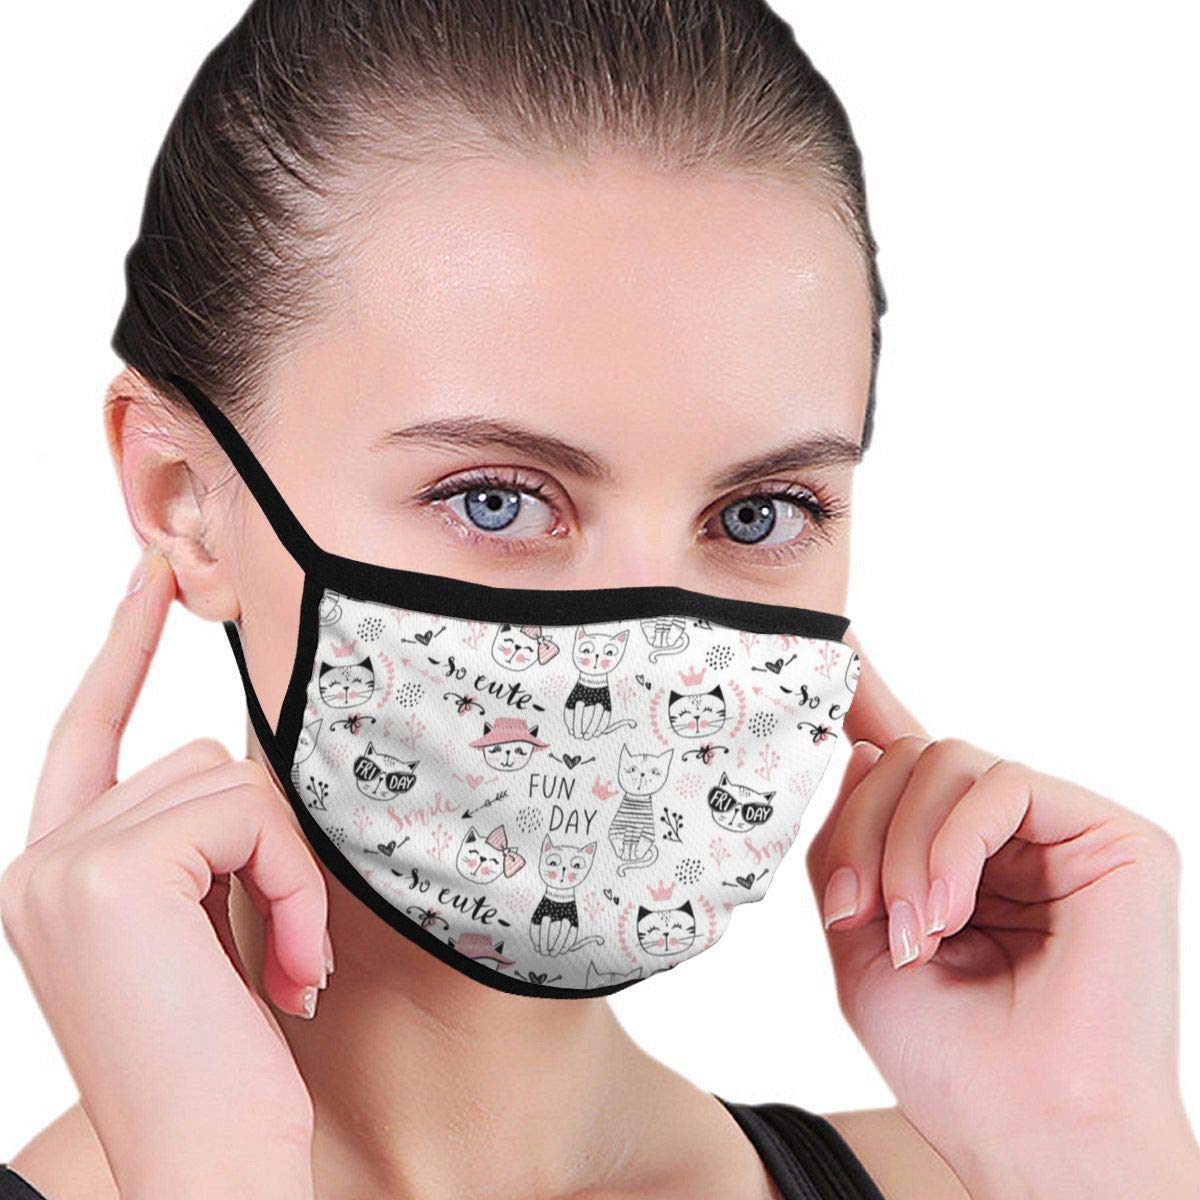 Bdwuhs Mascarillas Bucales Earloop Half Washable Reusable Mouth Mask Cotton Anti Dust Half Face Mouth Mask For Men Women Dustproof with Adjustable Ear Loops